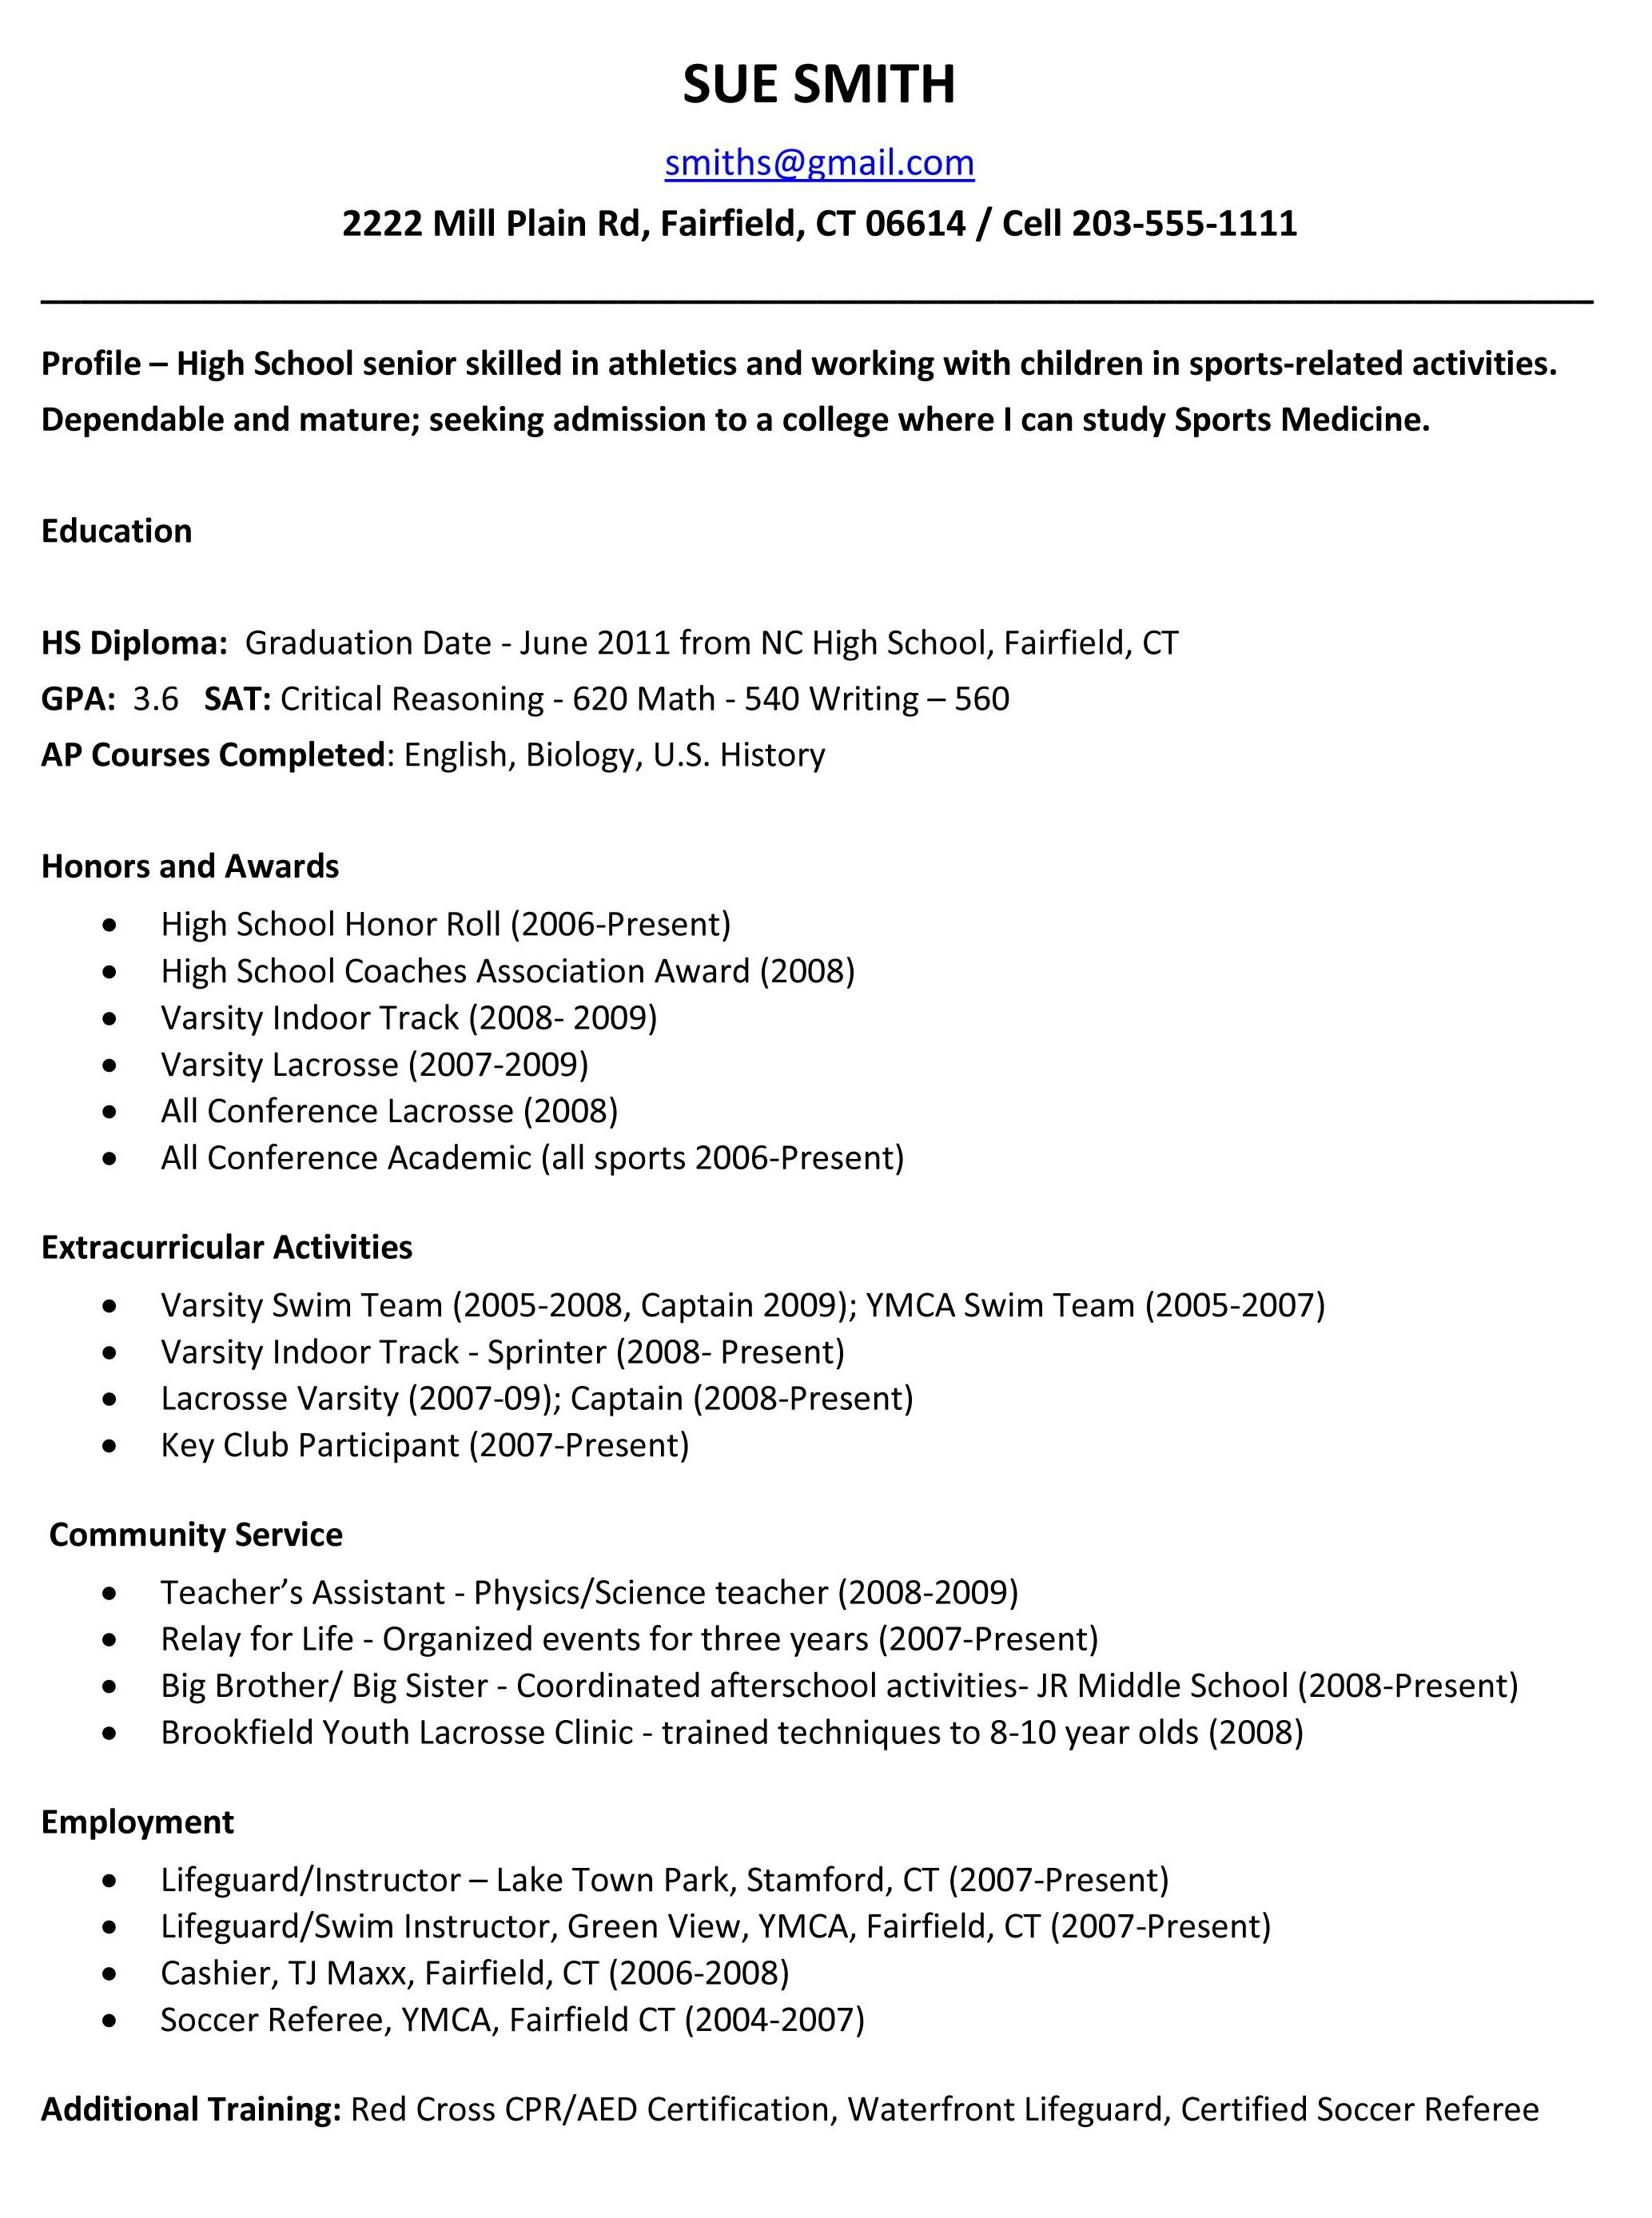 Skills For A High School Student Resume High School Student Resume Template Http Jobresume